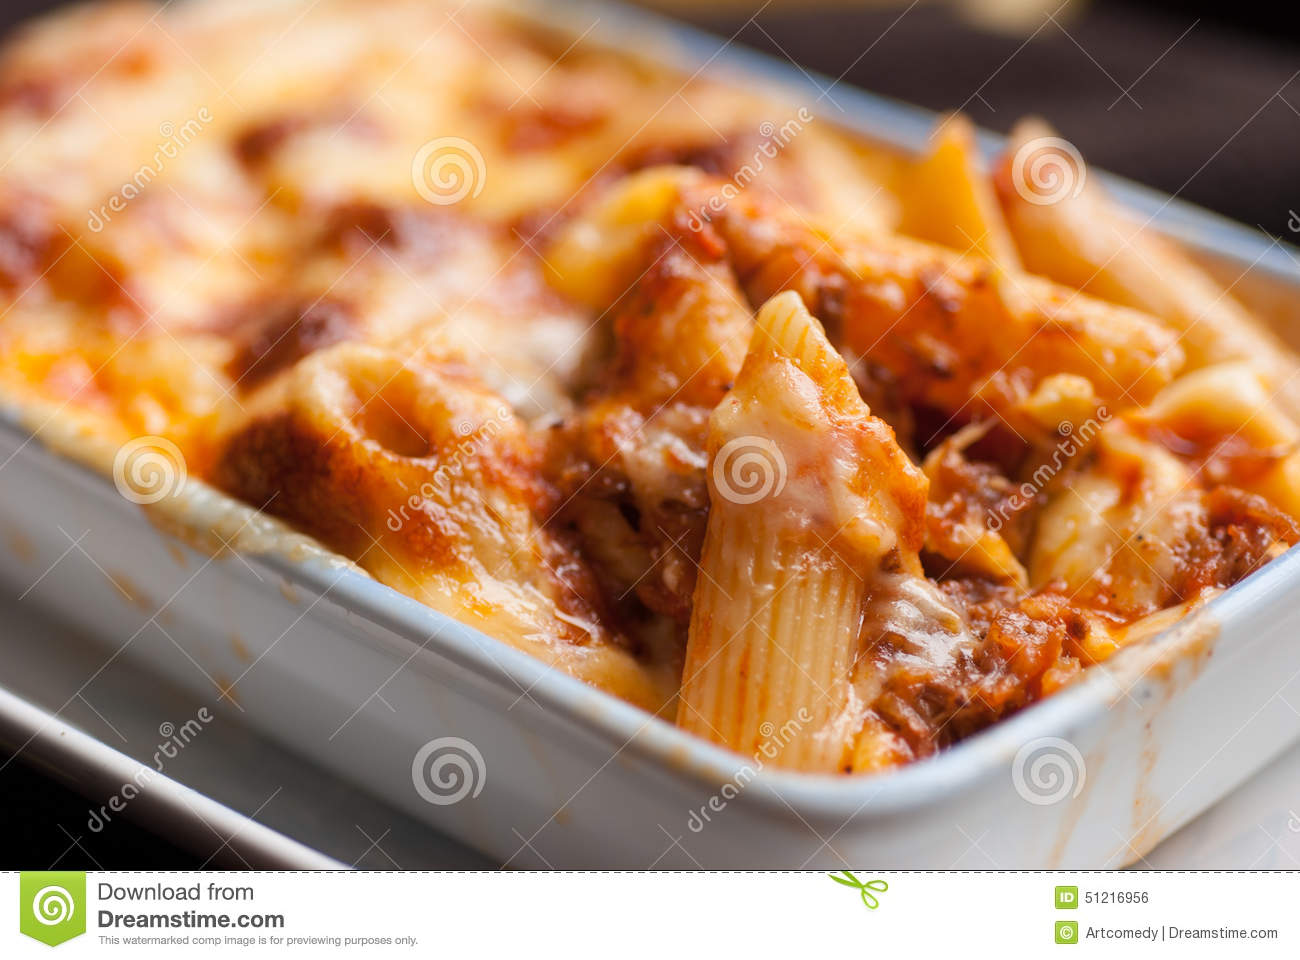 Baked Penne Pasta With Tomato Sauce And Cheese Stock Photo ...